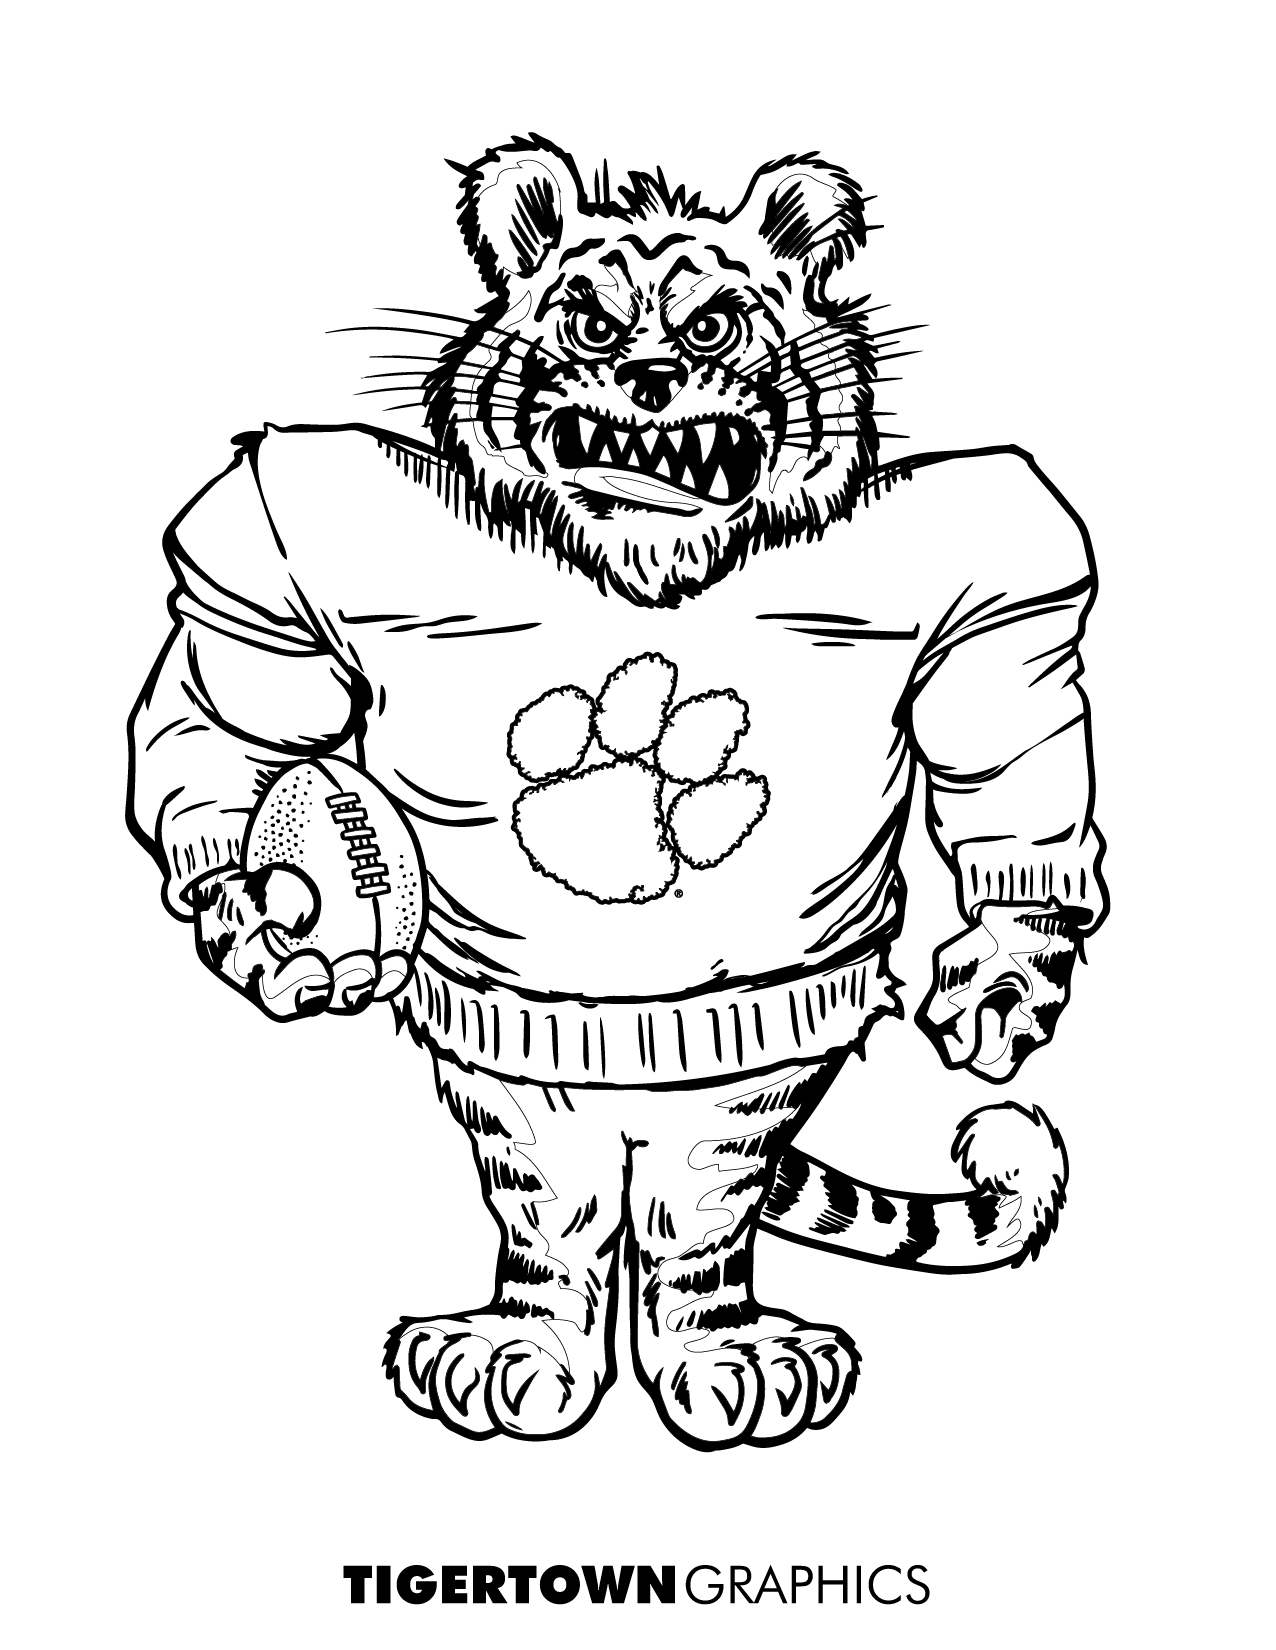 clemson football coloring pages | Coloring Pages! - Tigertown Graphics